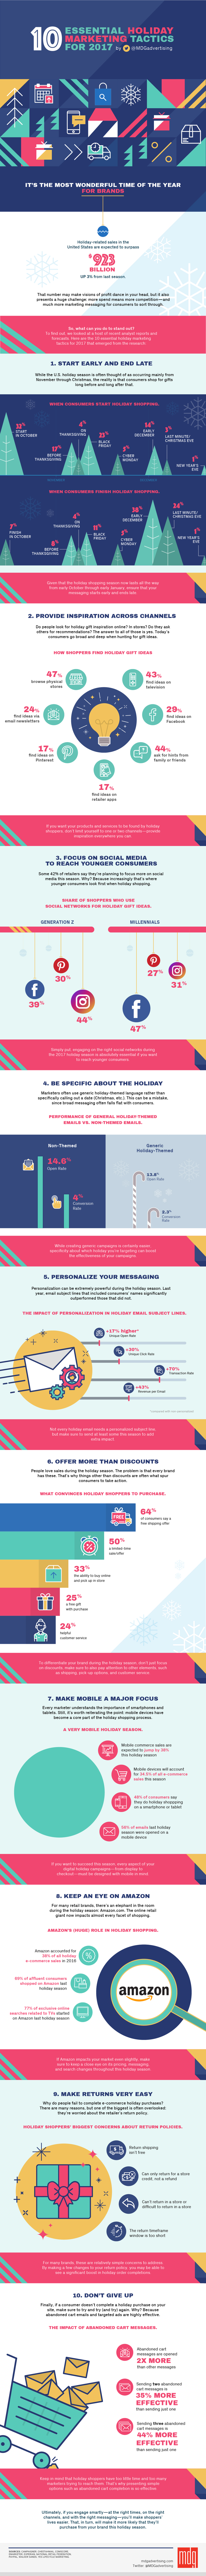 10 Essential Holiday Marketing Tactics for 2017 [Infographic]